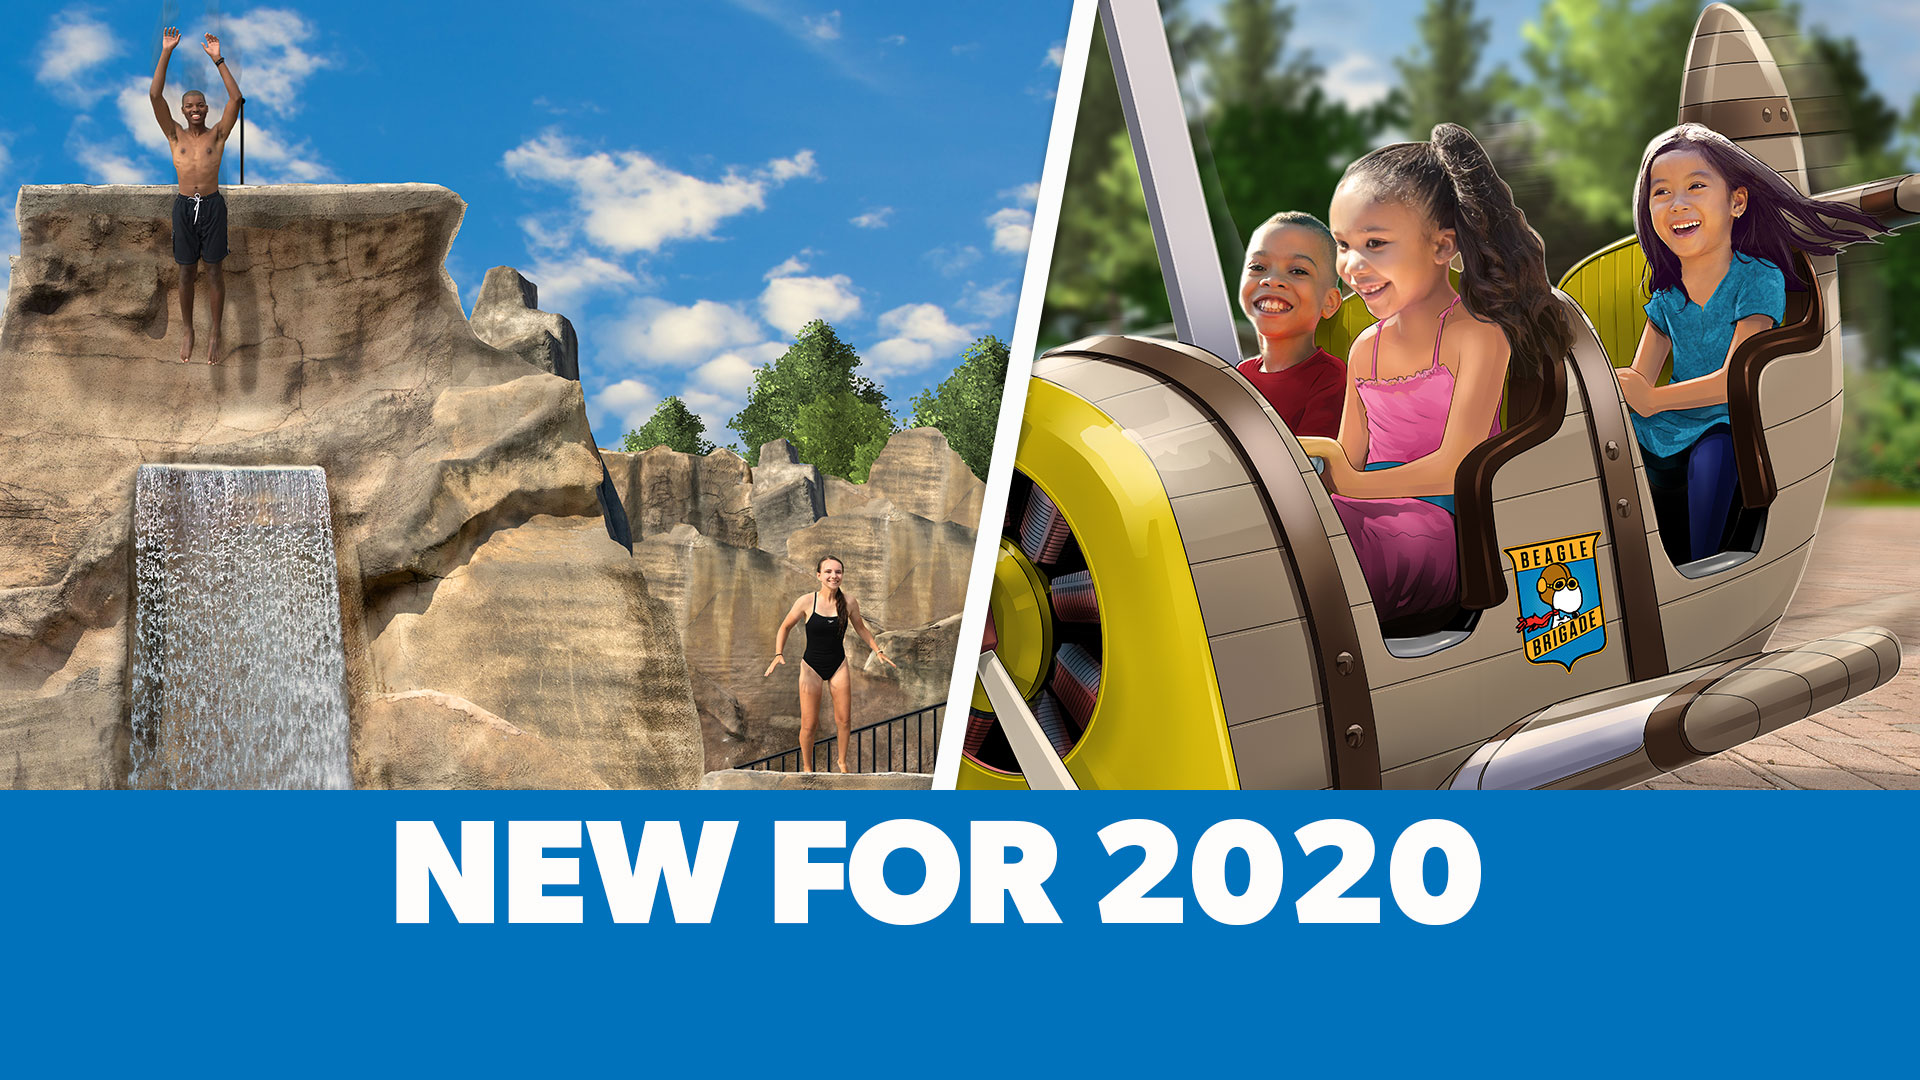 Canada's Wonderland - New for 2020